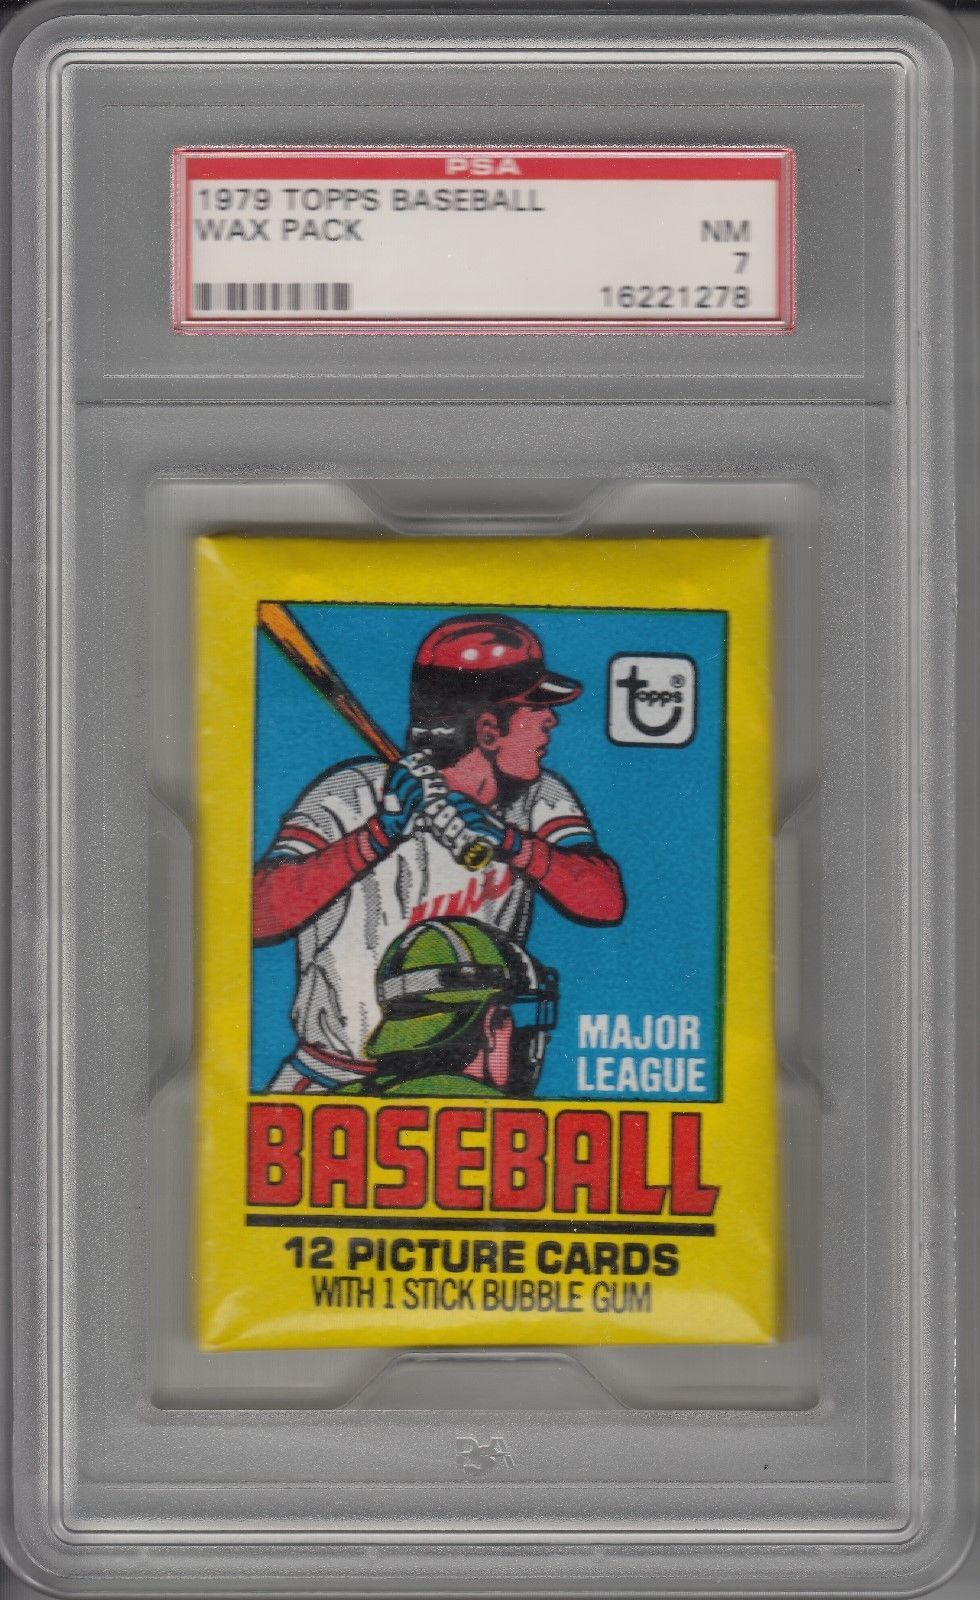 1979 topps baseball unopened wax pack psa 7 collect